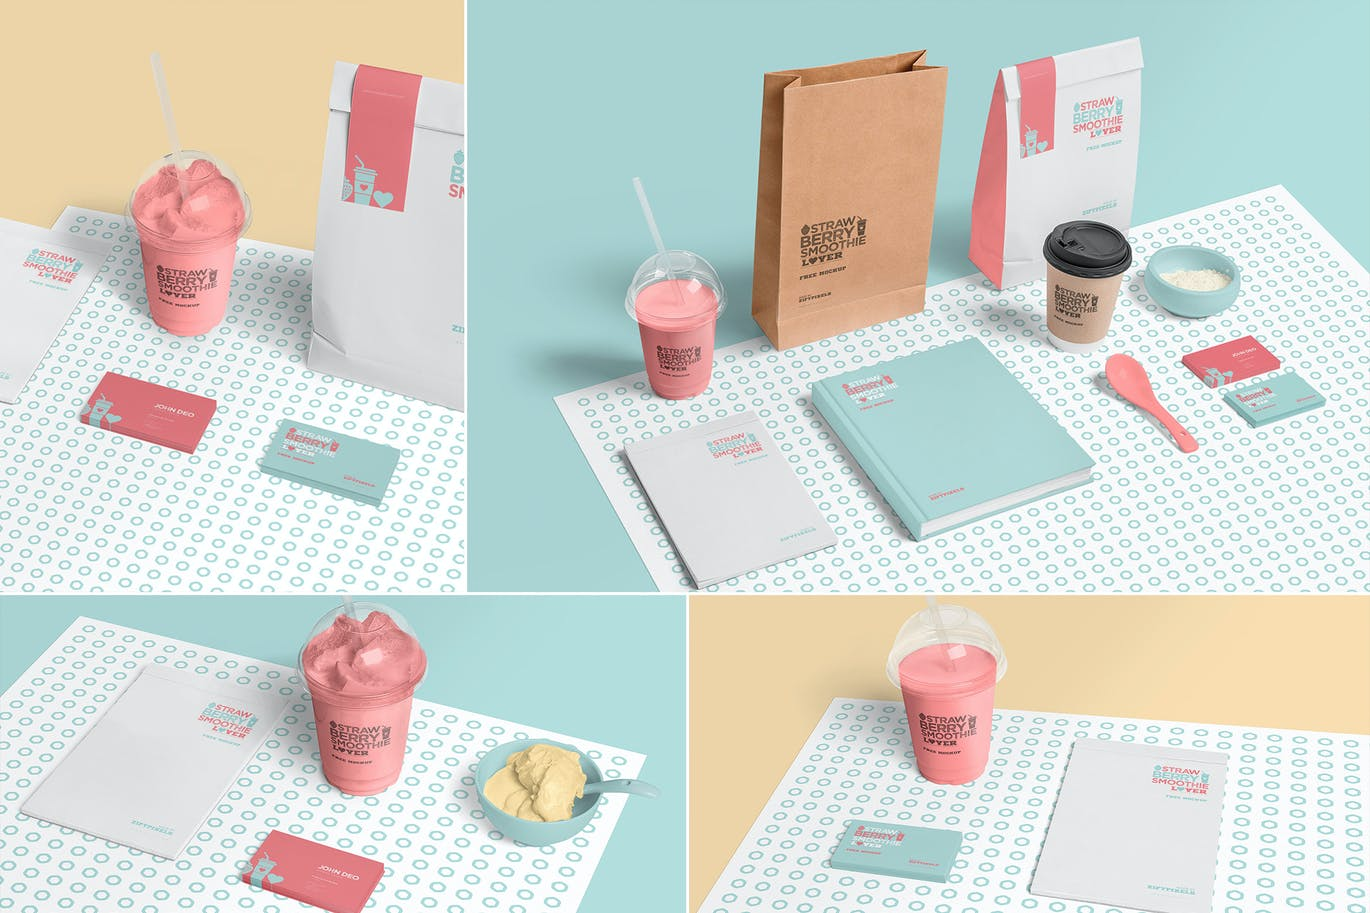 Transparent Plastic Ice Cream Cup Mockups By Zippypixels On